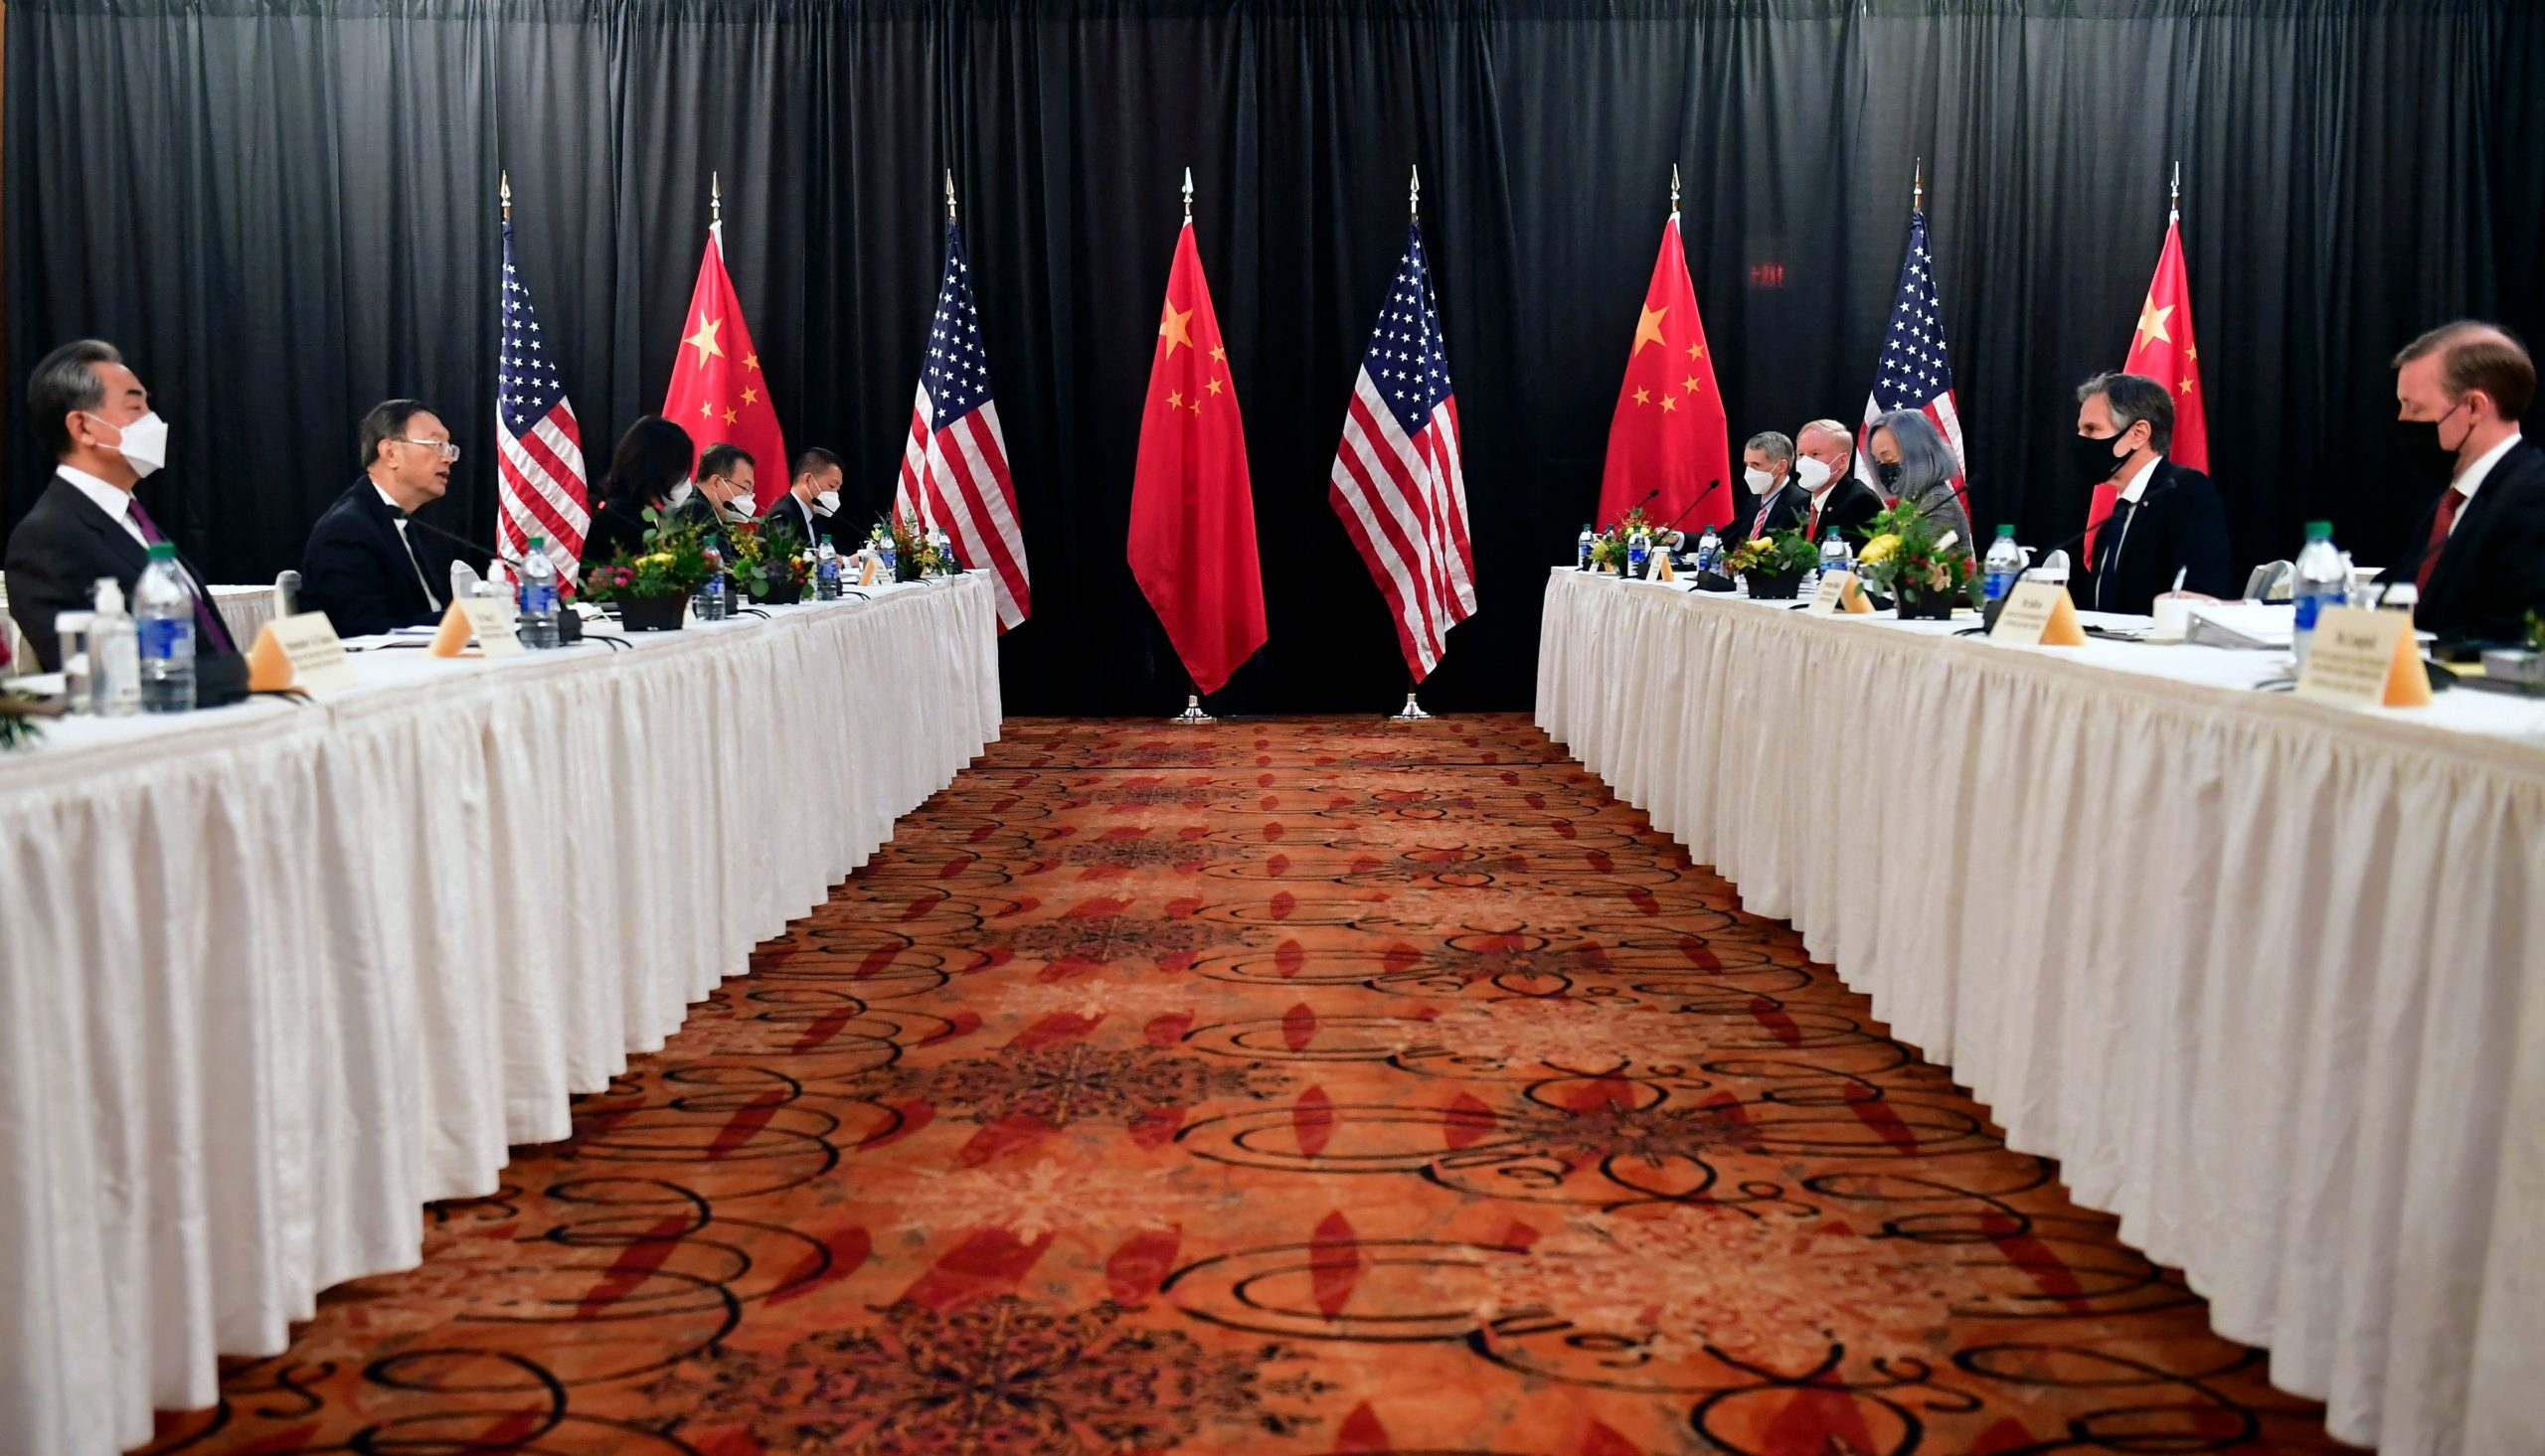 Secretary of State Antony Blinken, joined by National Security Adviser Jake Sullivan, speaks while facing Chinese diplomats in Anchorage, Alaska on March 18. (Frederic J. Brown/Pool/AFP via Getty Images)